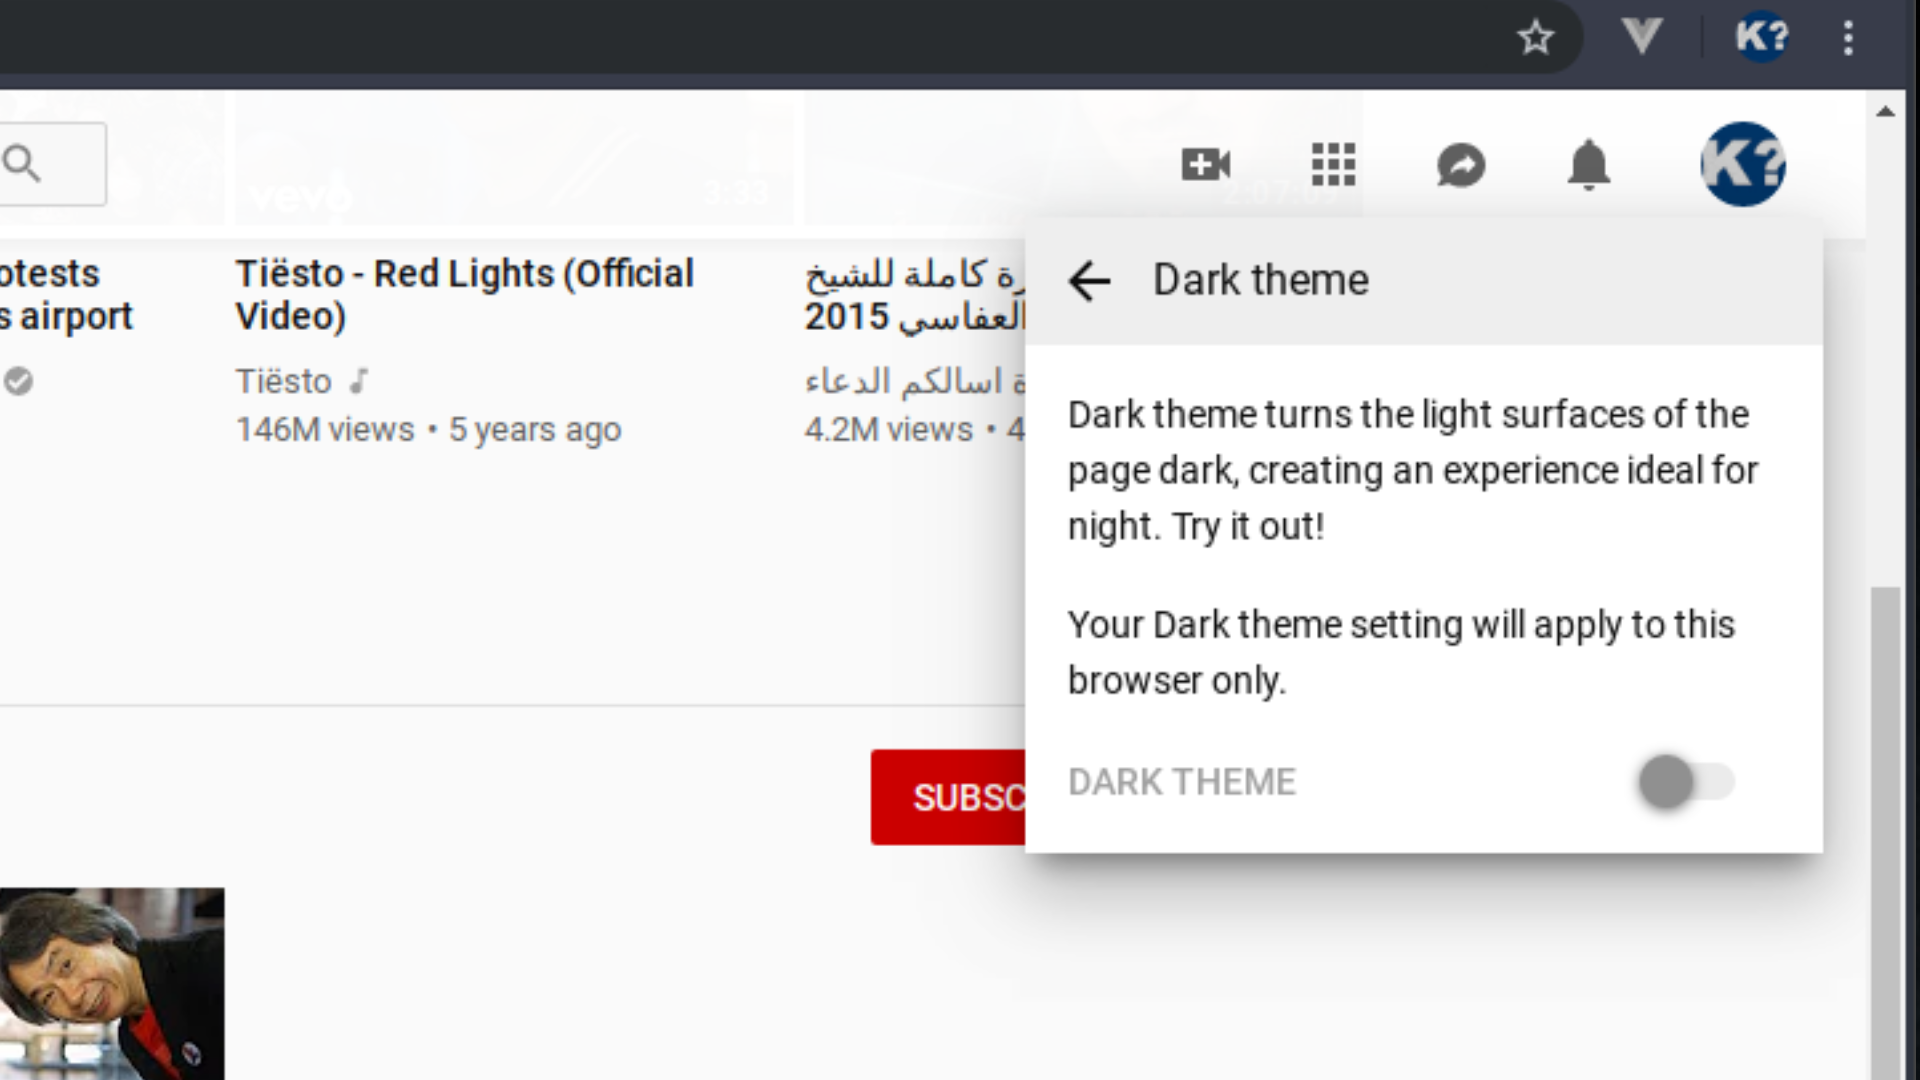 How to activate dark theme mode on YouTube? #keefto